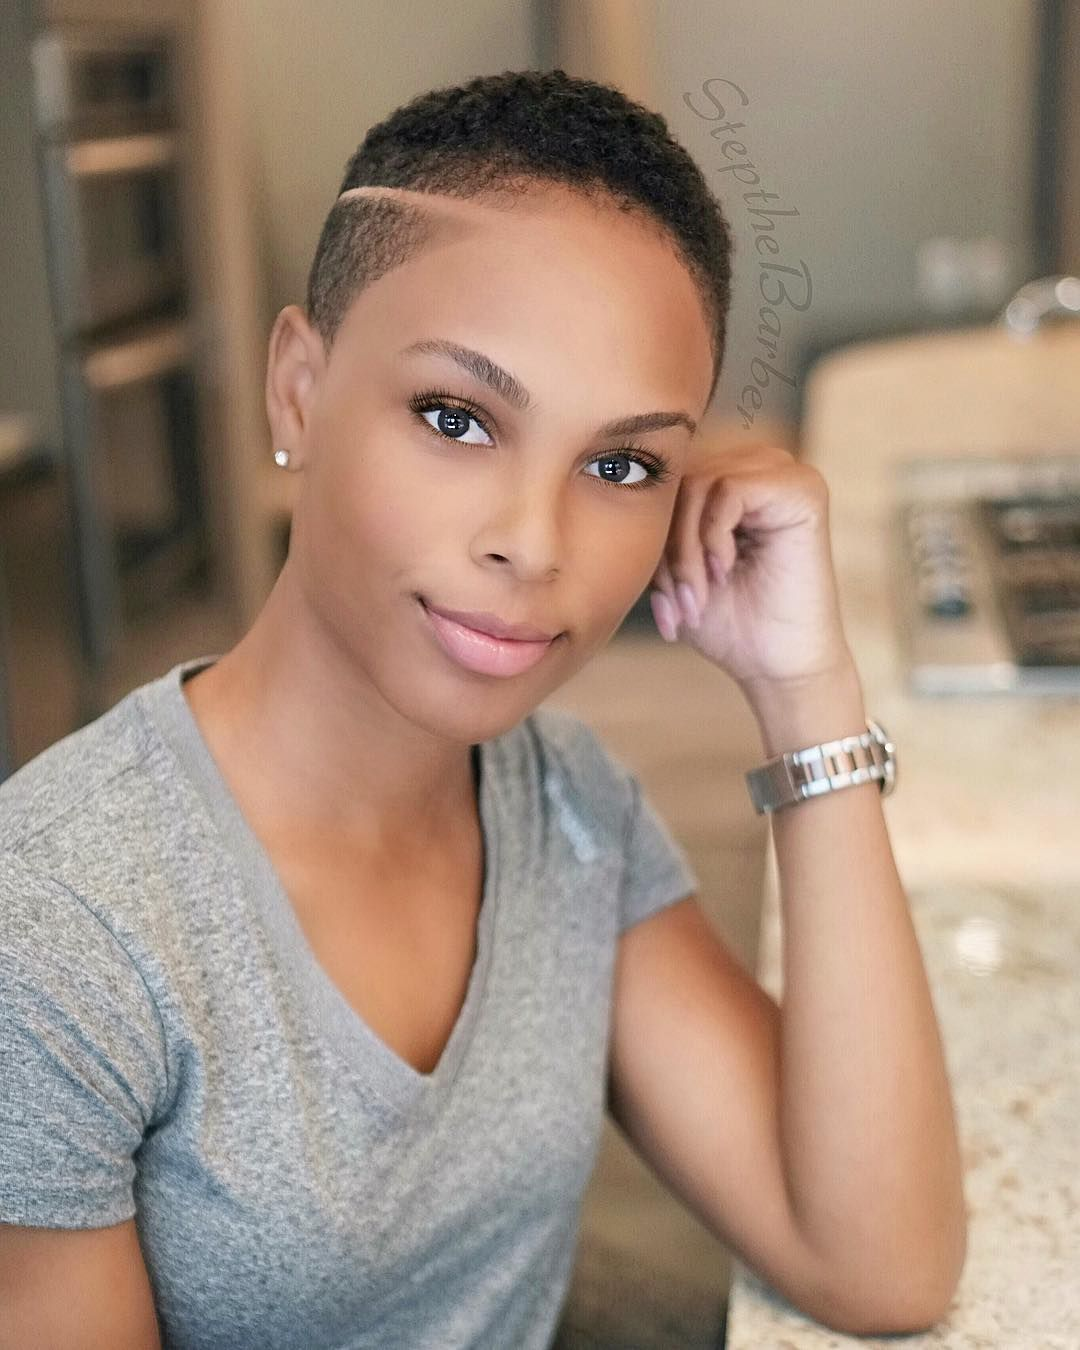 Pin by Keshia Bradford on Hair Styles For Me in 2018 | Pinterest | Cheveux, Coiffure and Cheveux ...